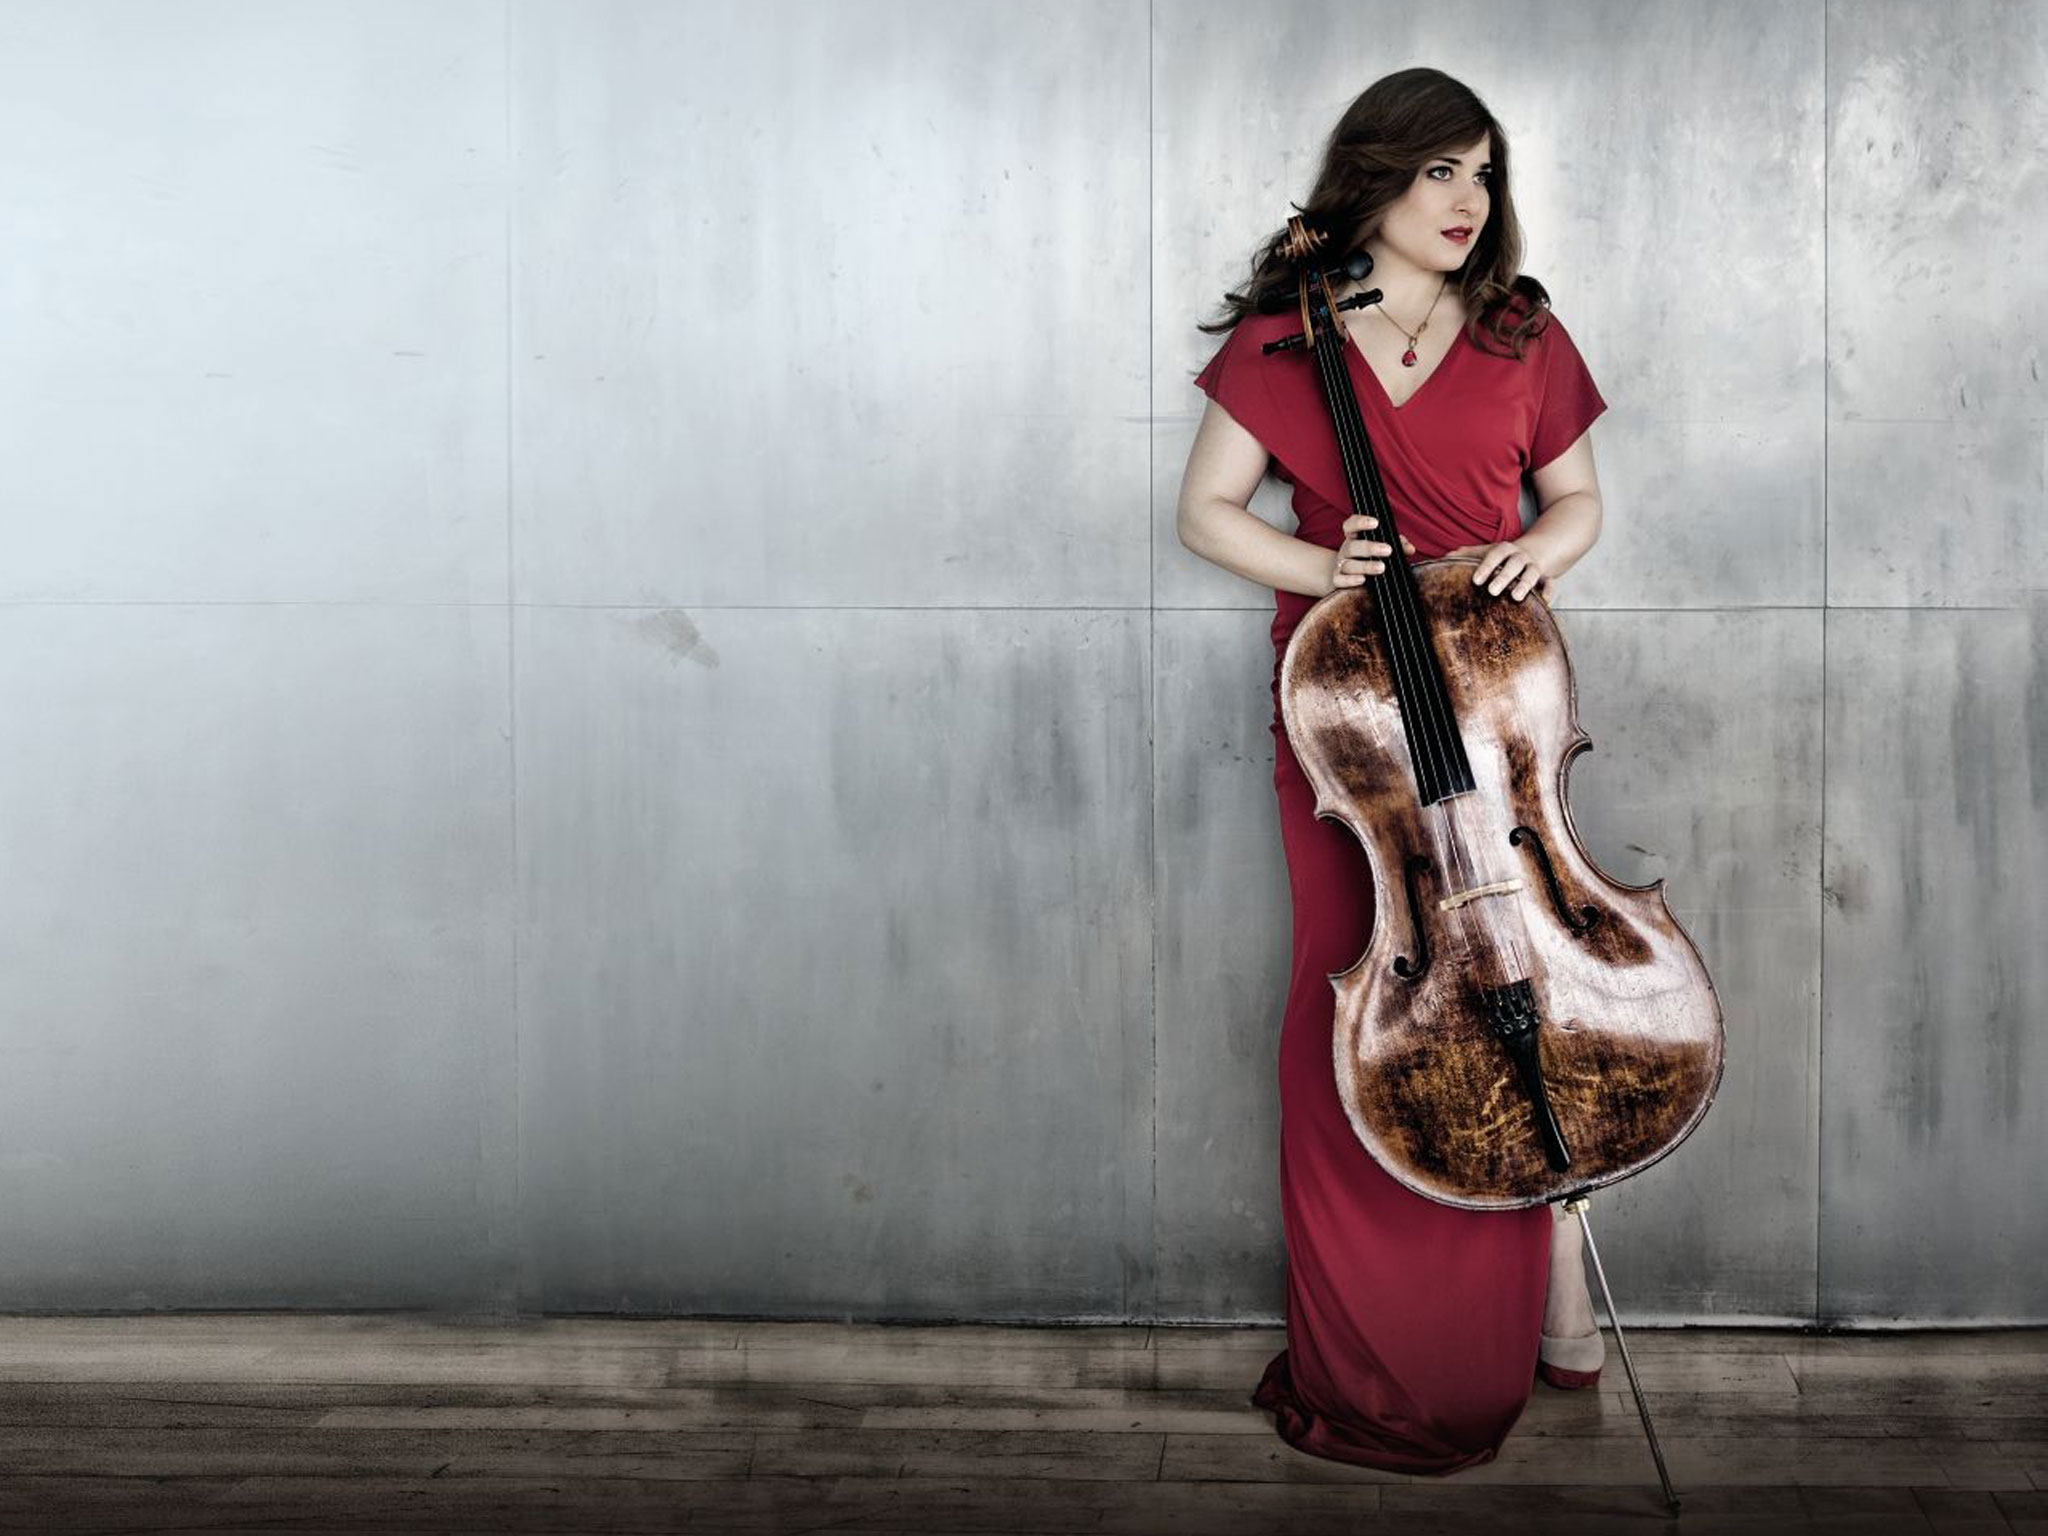 Cellist Alisa Weilerstein posing with cello